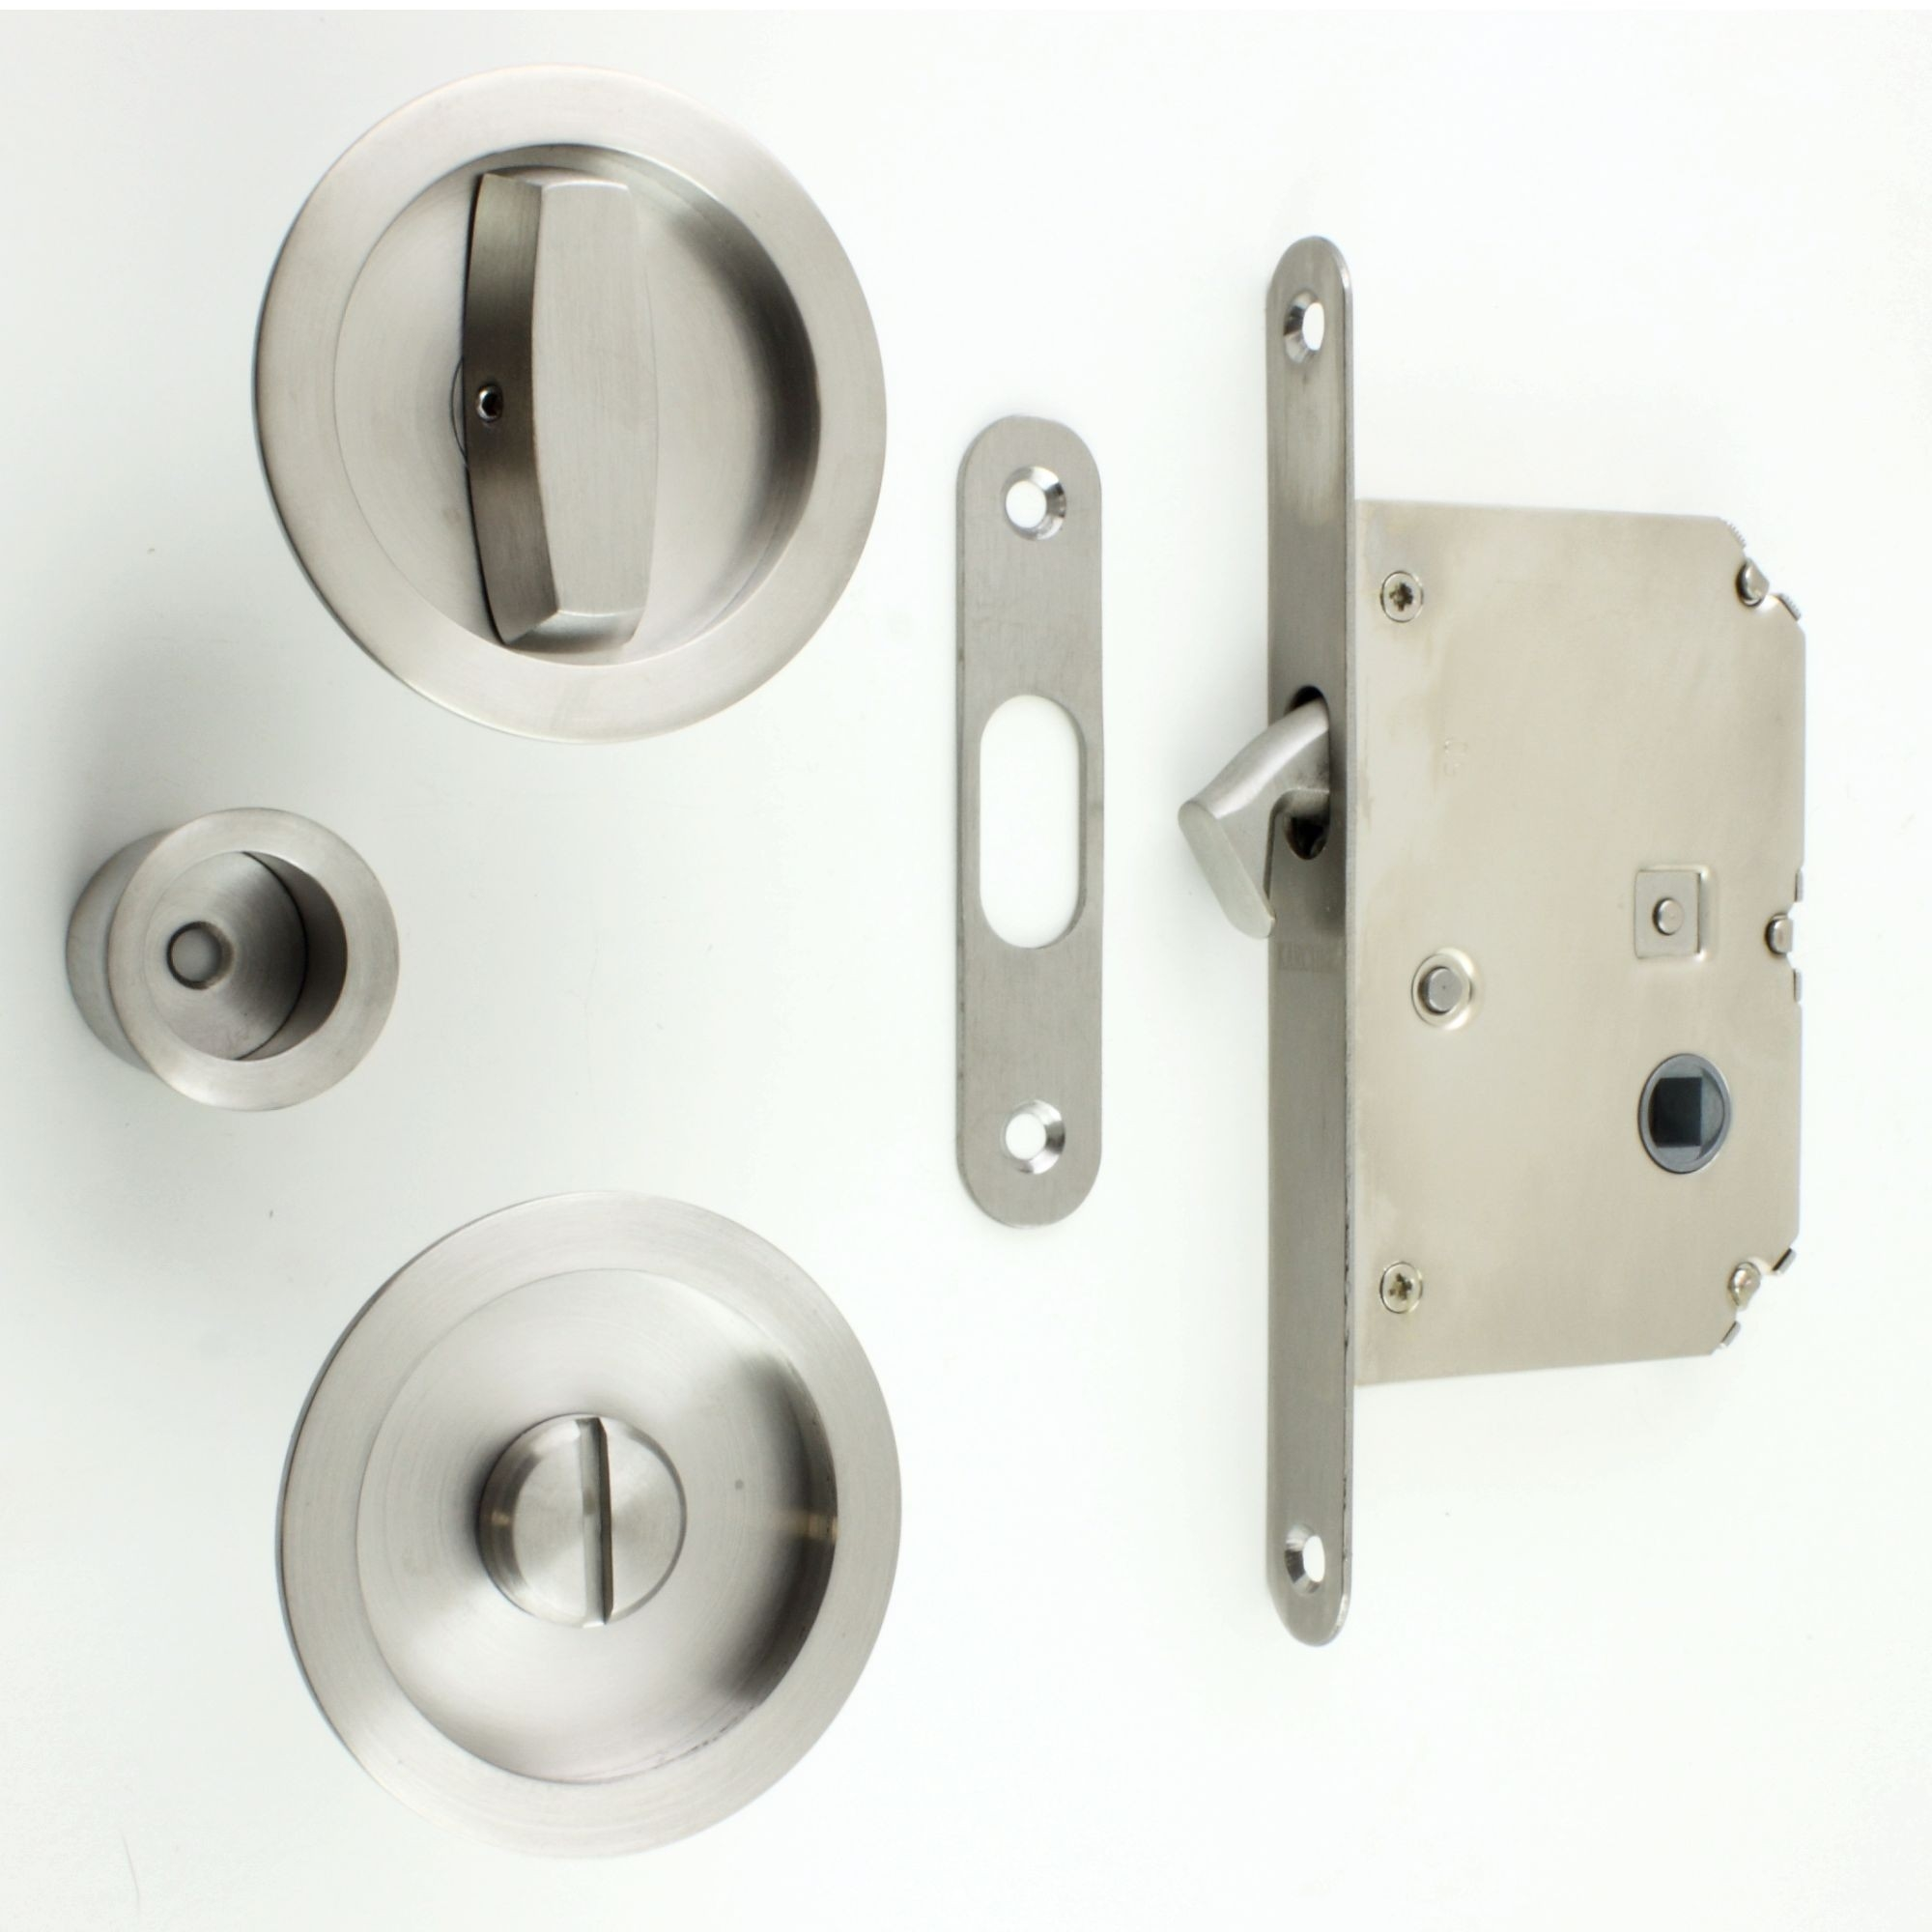 Permalink to Sliding Glass Door Bathroom Lock